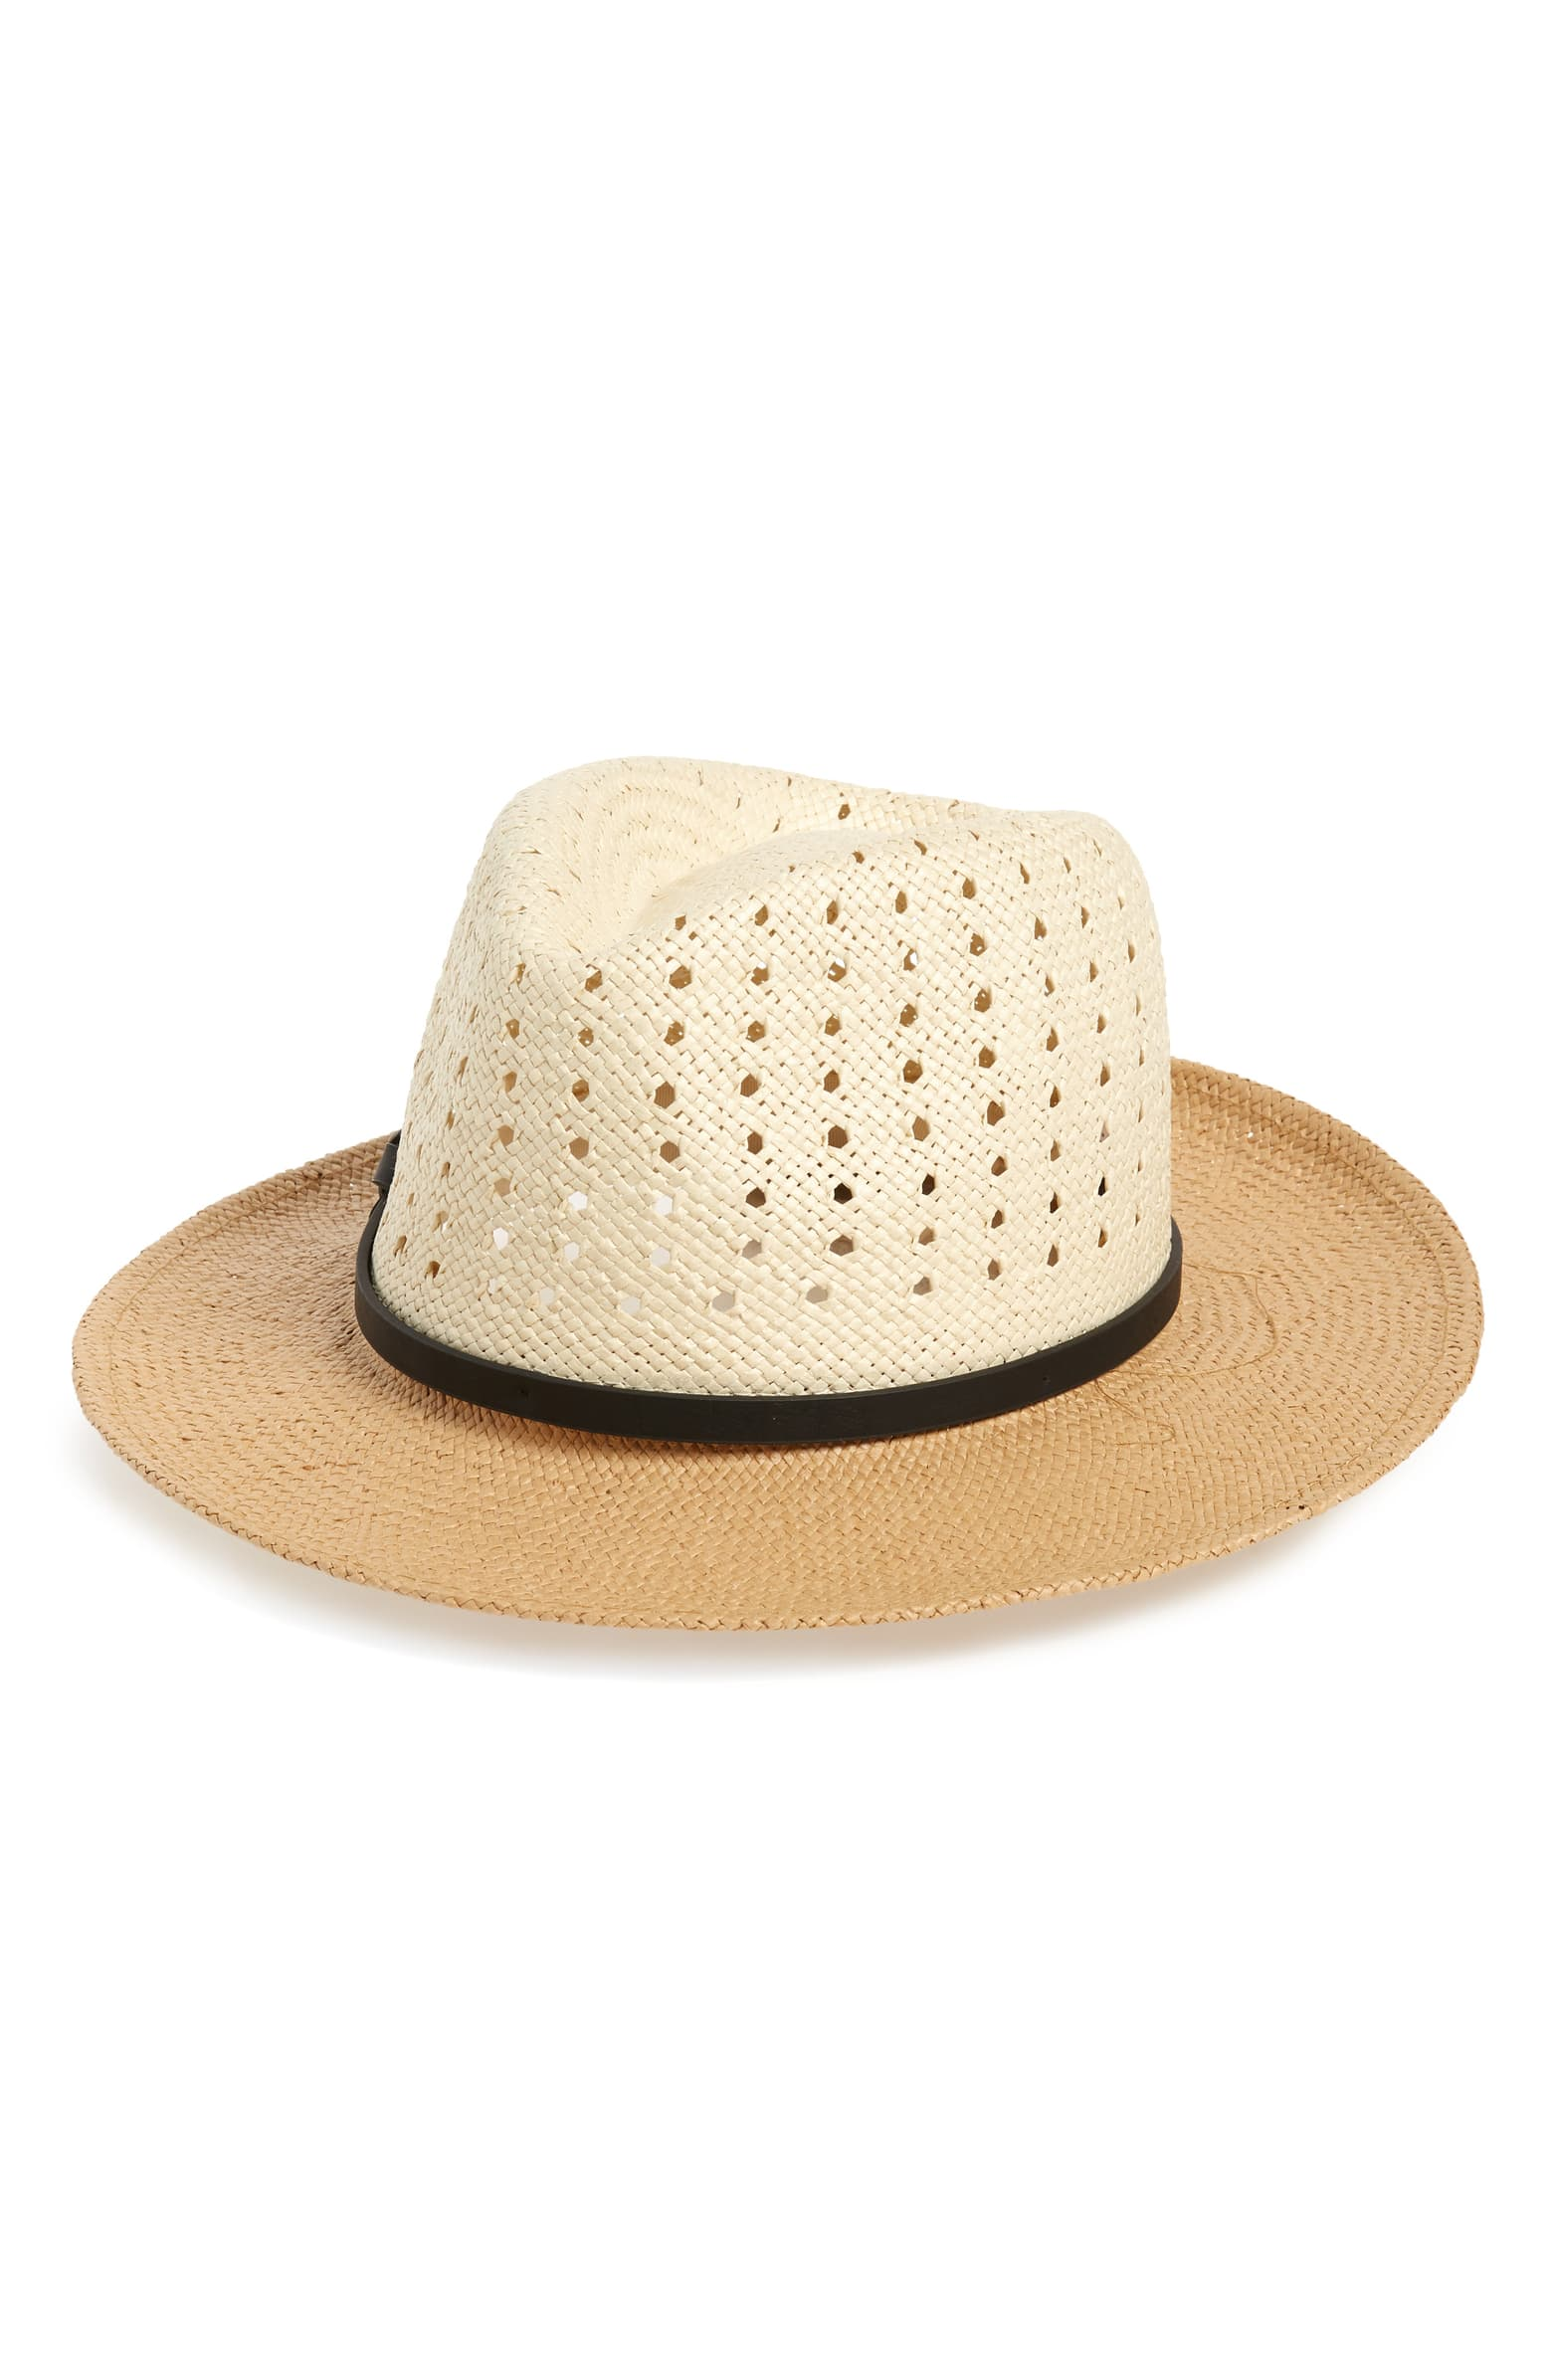 panama hat.jpeg